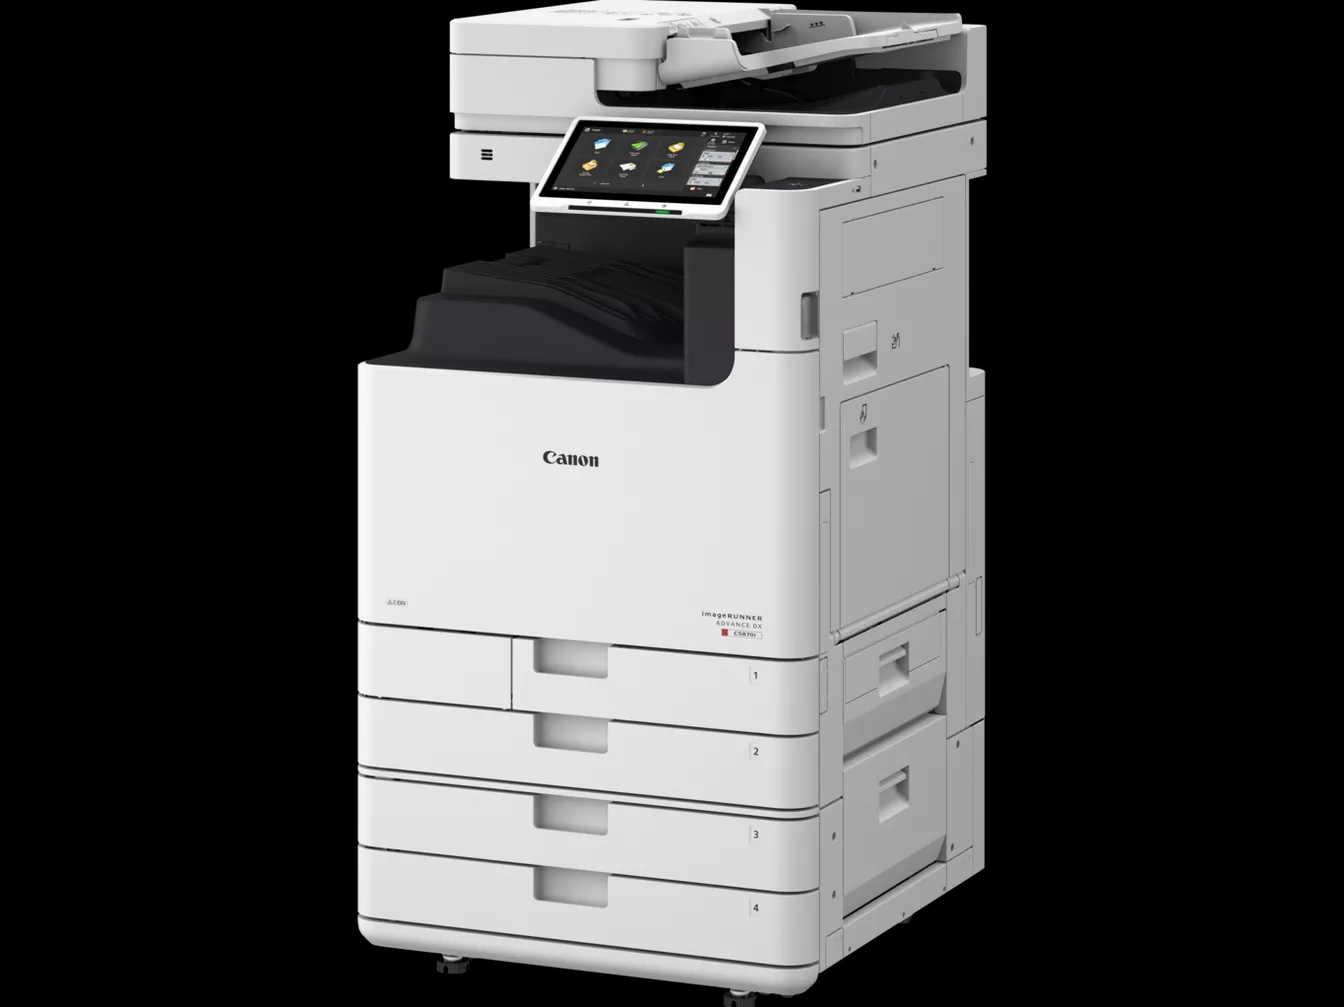 Canon ImageRUNNER advance DX C5860i A3 Colour MFD photocopier Printer